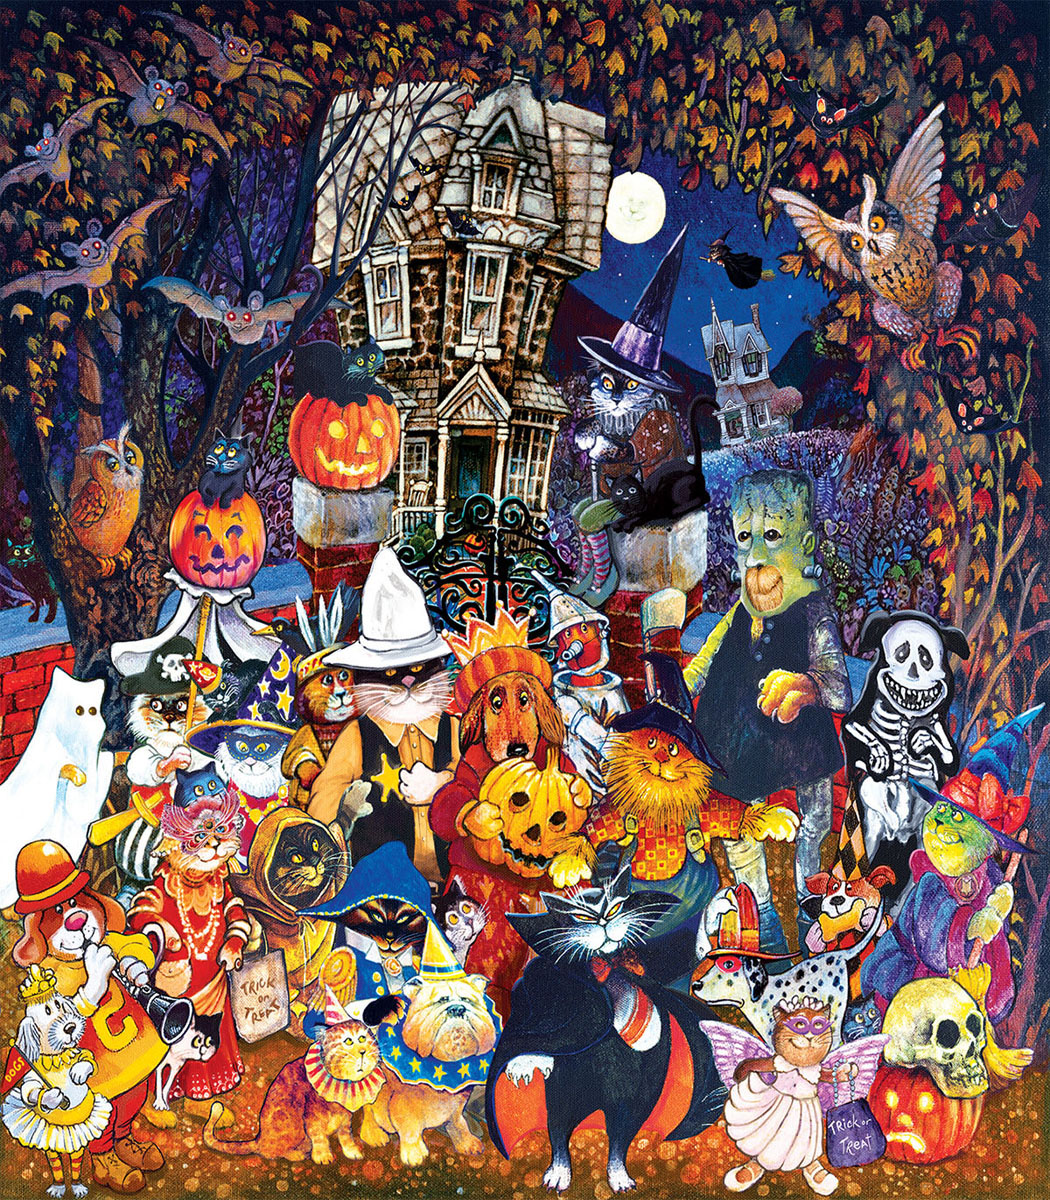 Cats and Dogs on Halloween Animals Jigsaw Puzzle